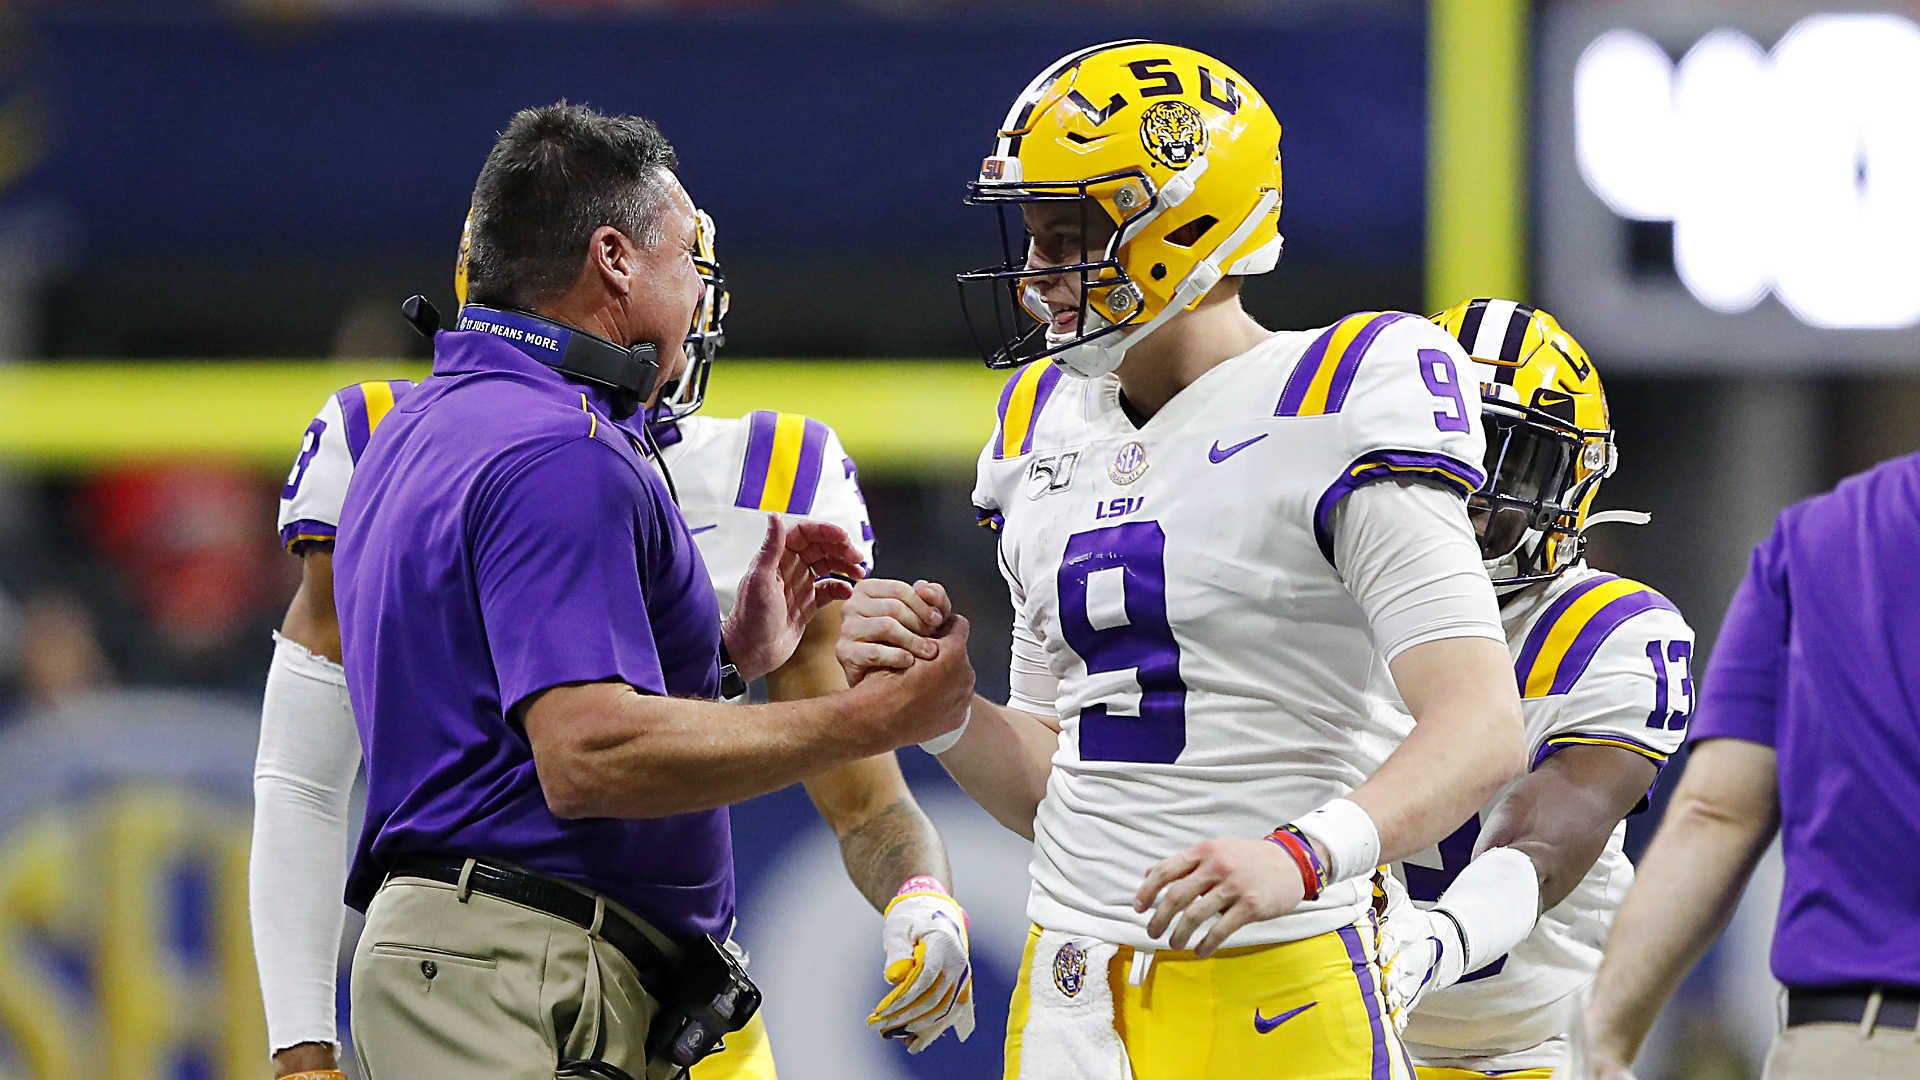 College Football Playoff picture: Four in, first two out in final rankings